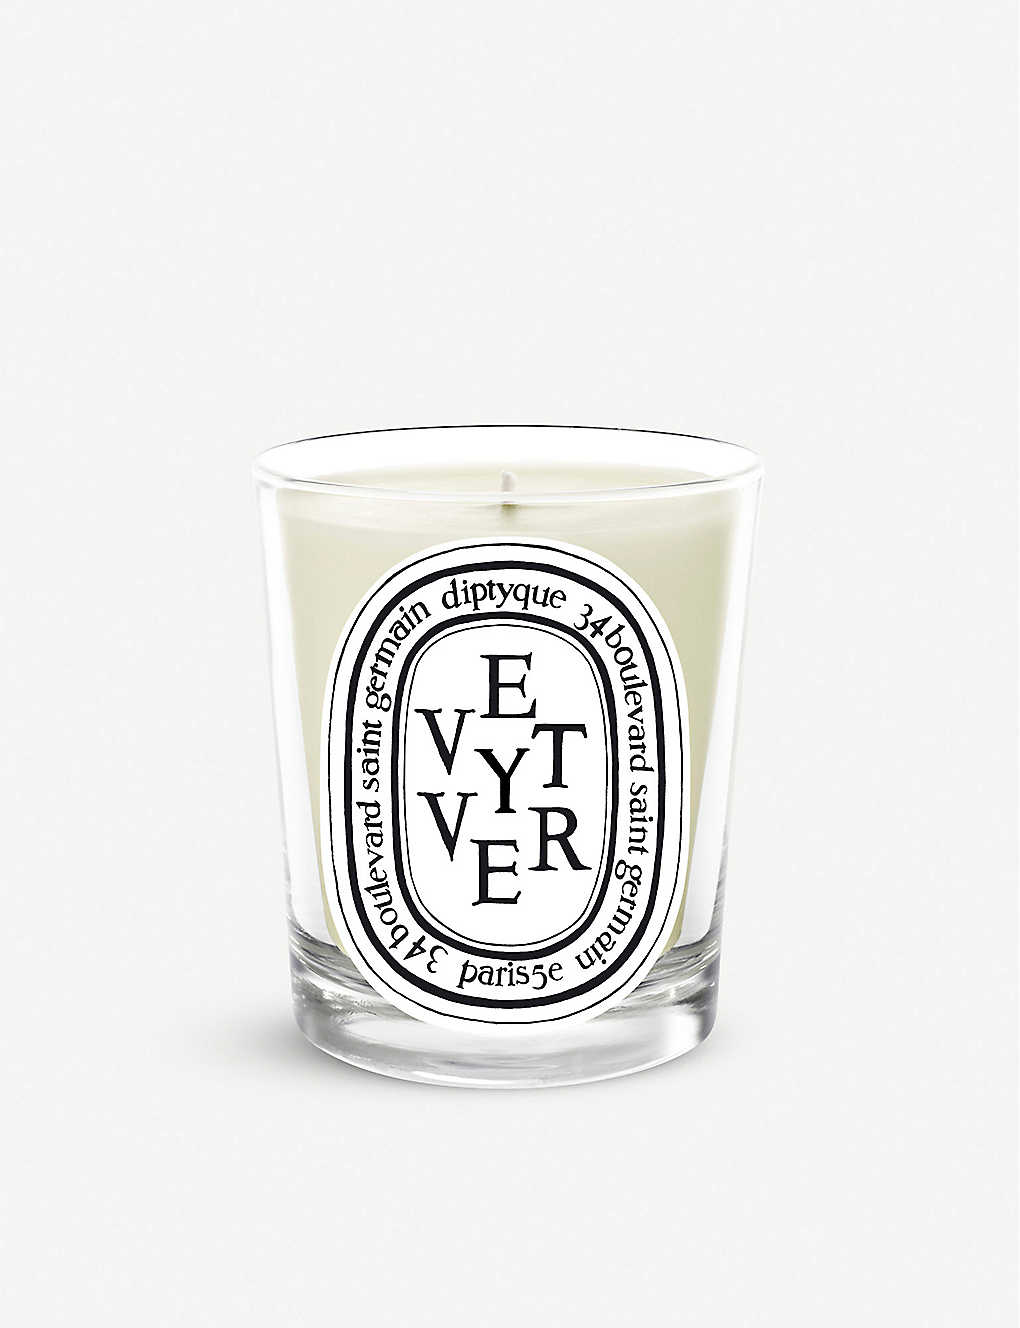 DIPTYQUE: Vetyver scented candle